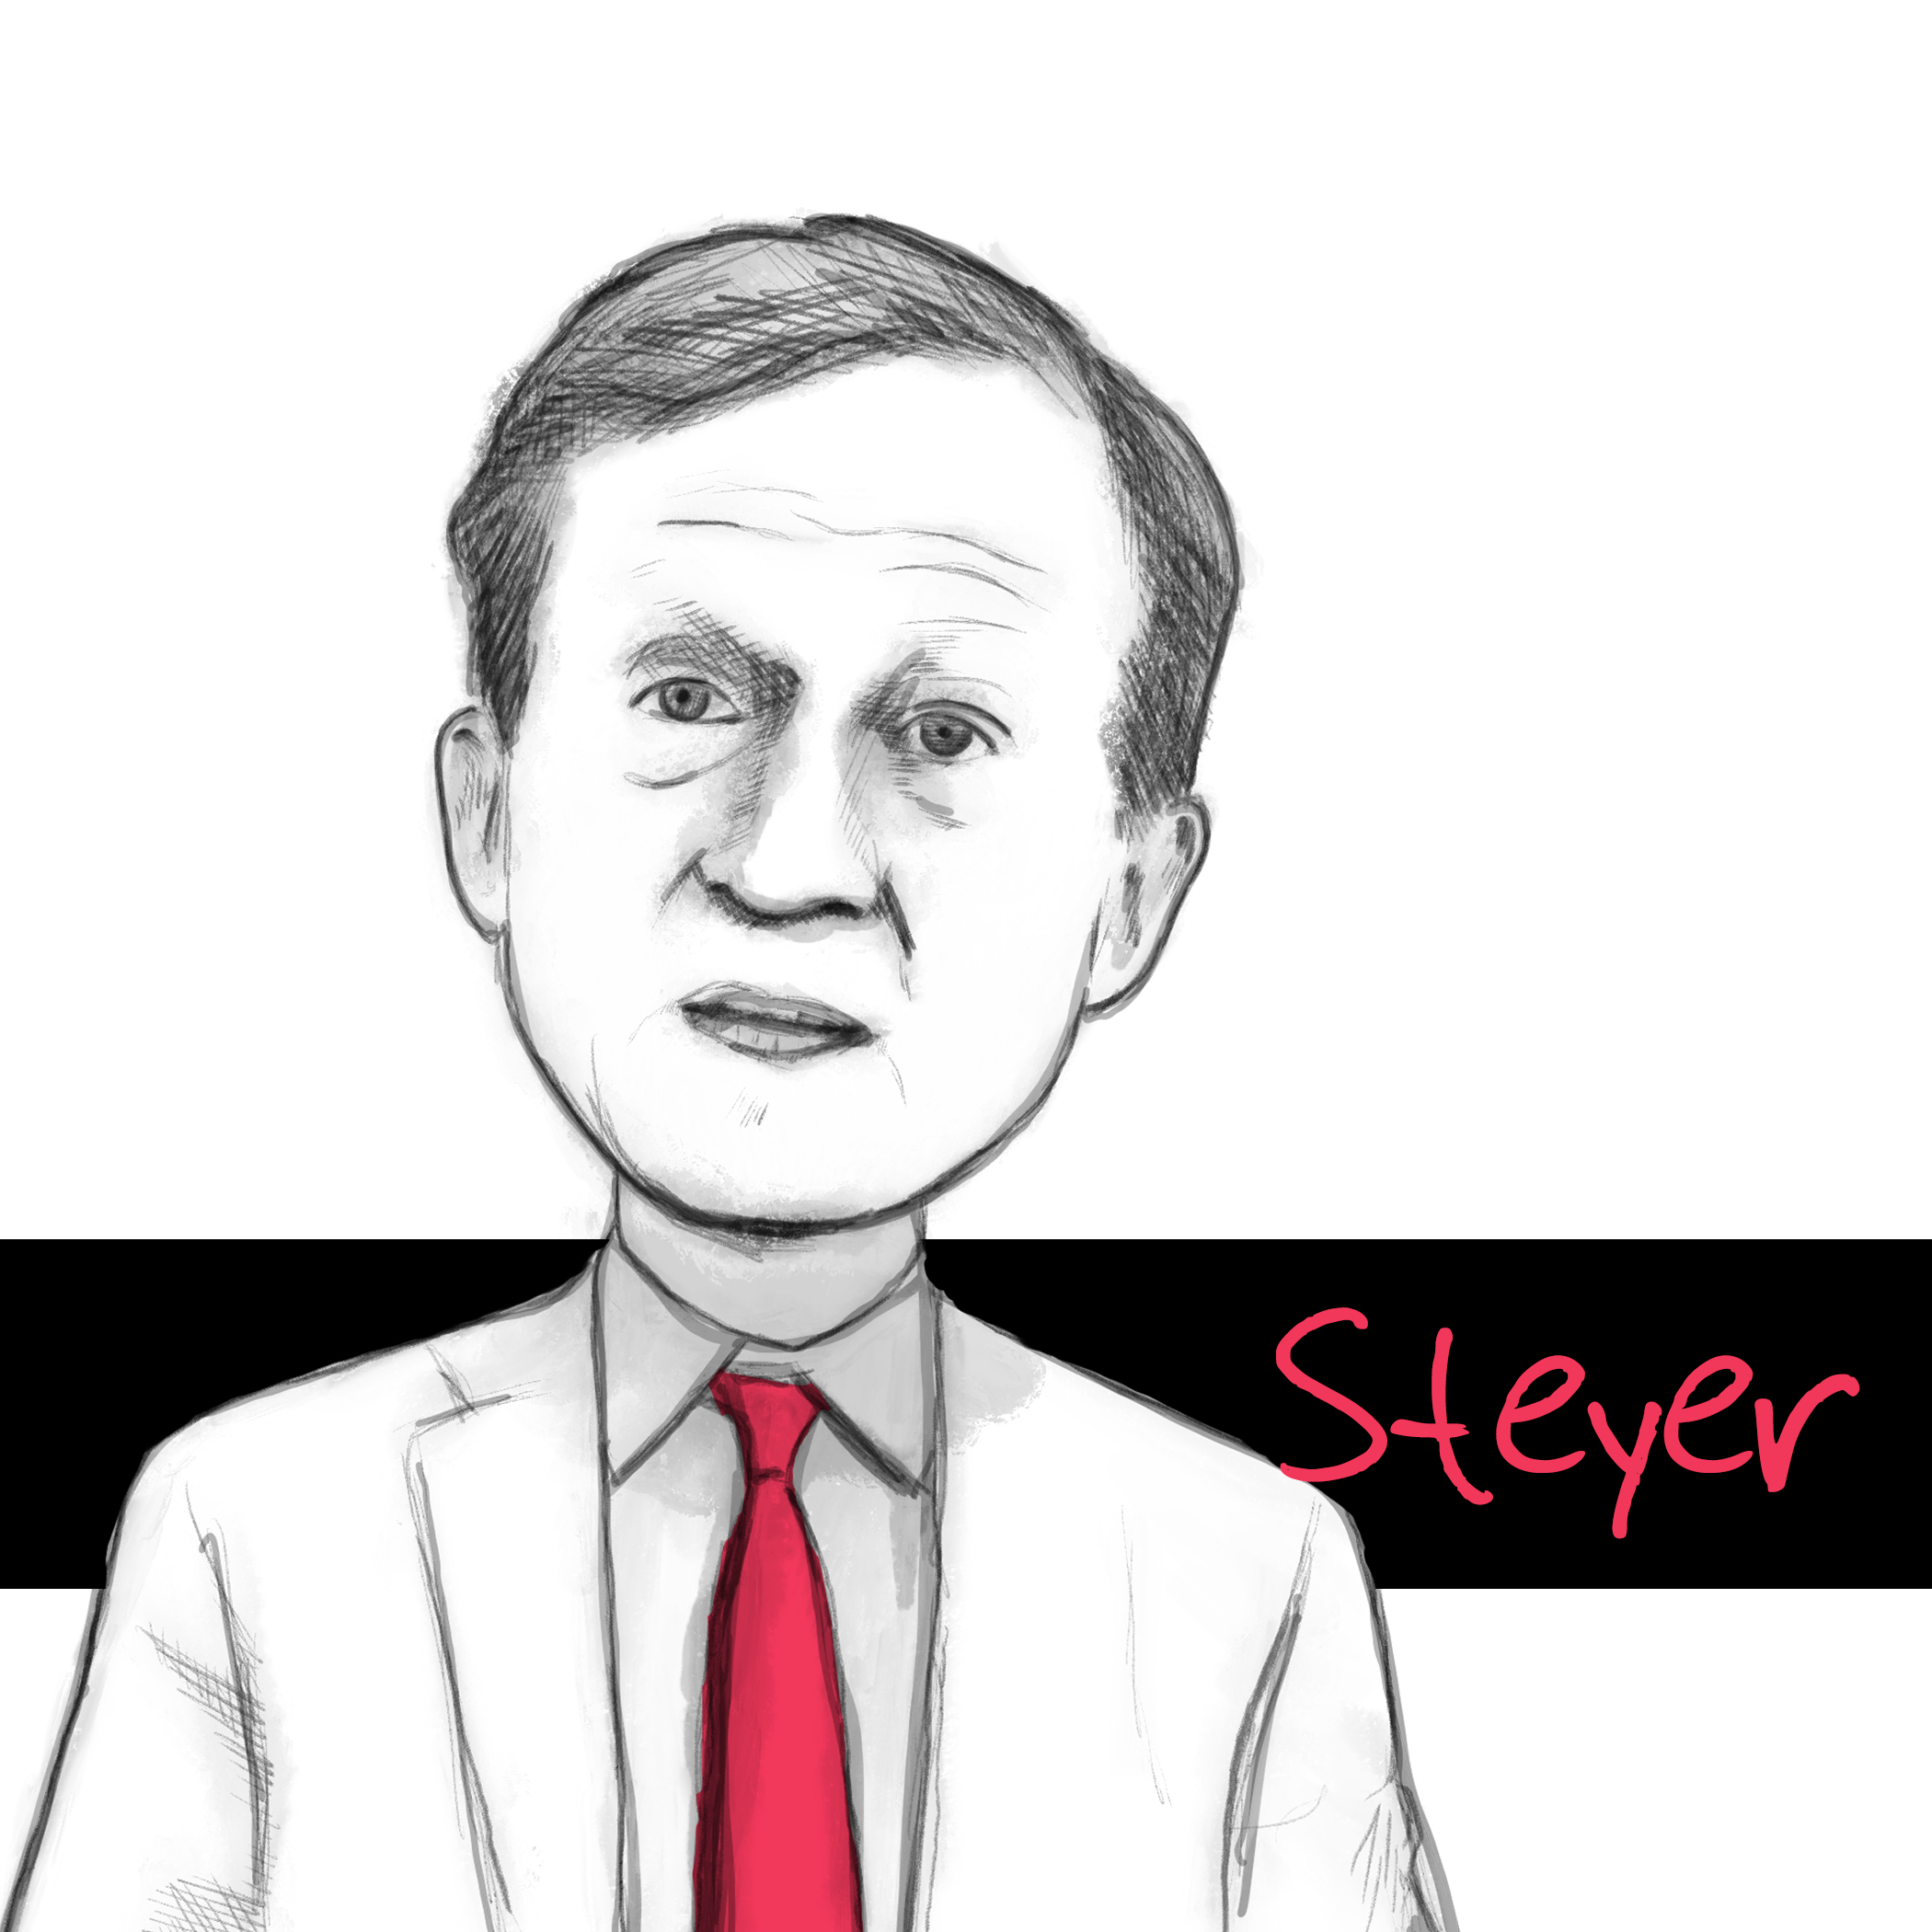 Tom Steyer - Democrat For President - https://www.tomsteyer.com